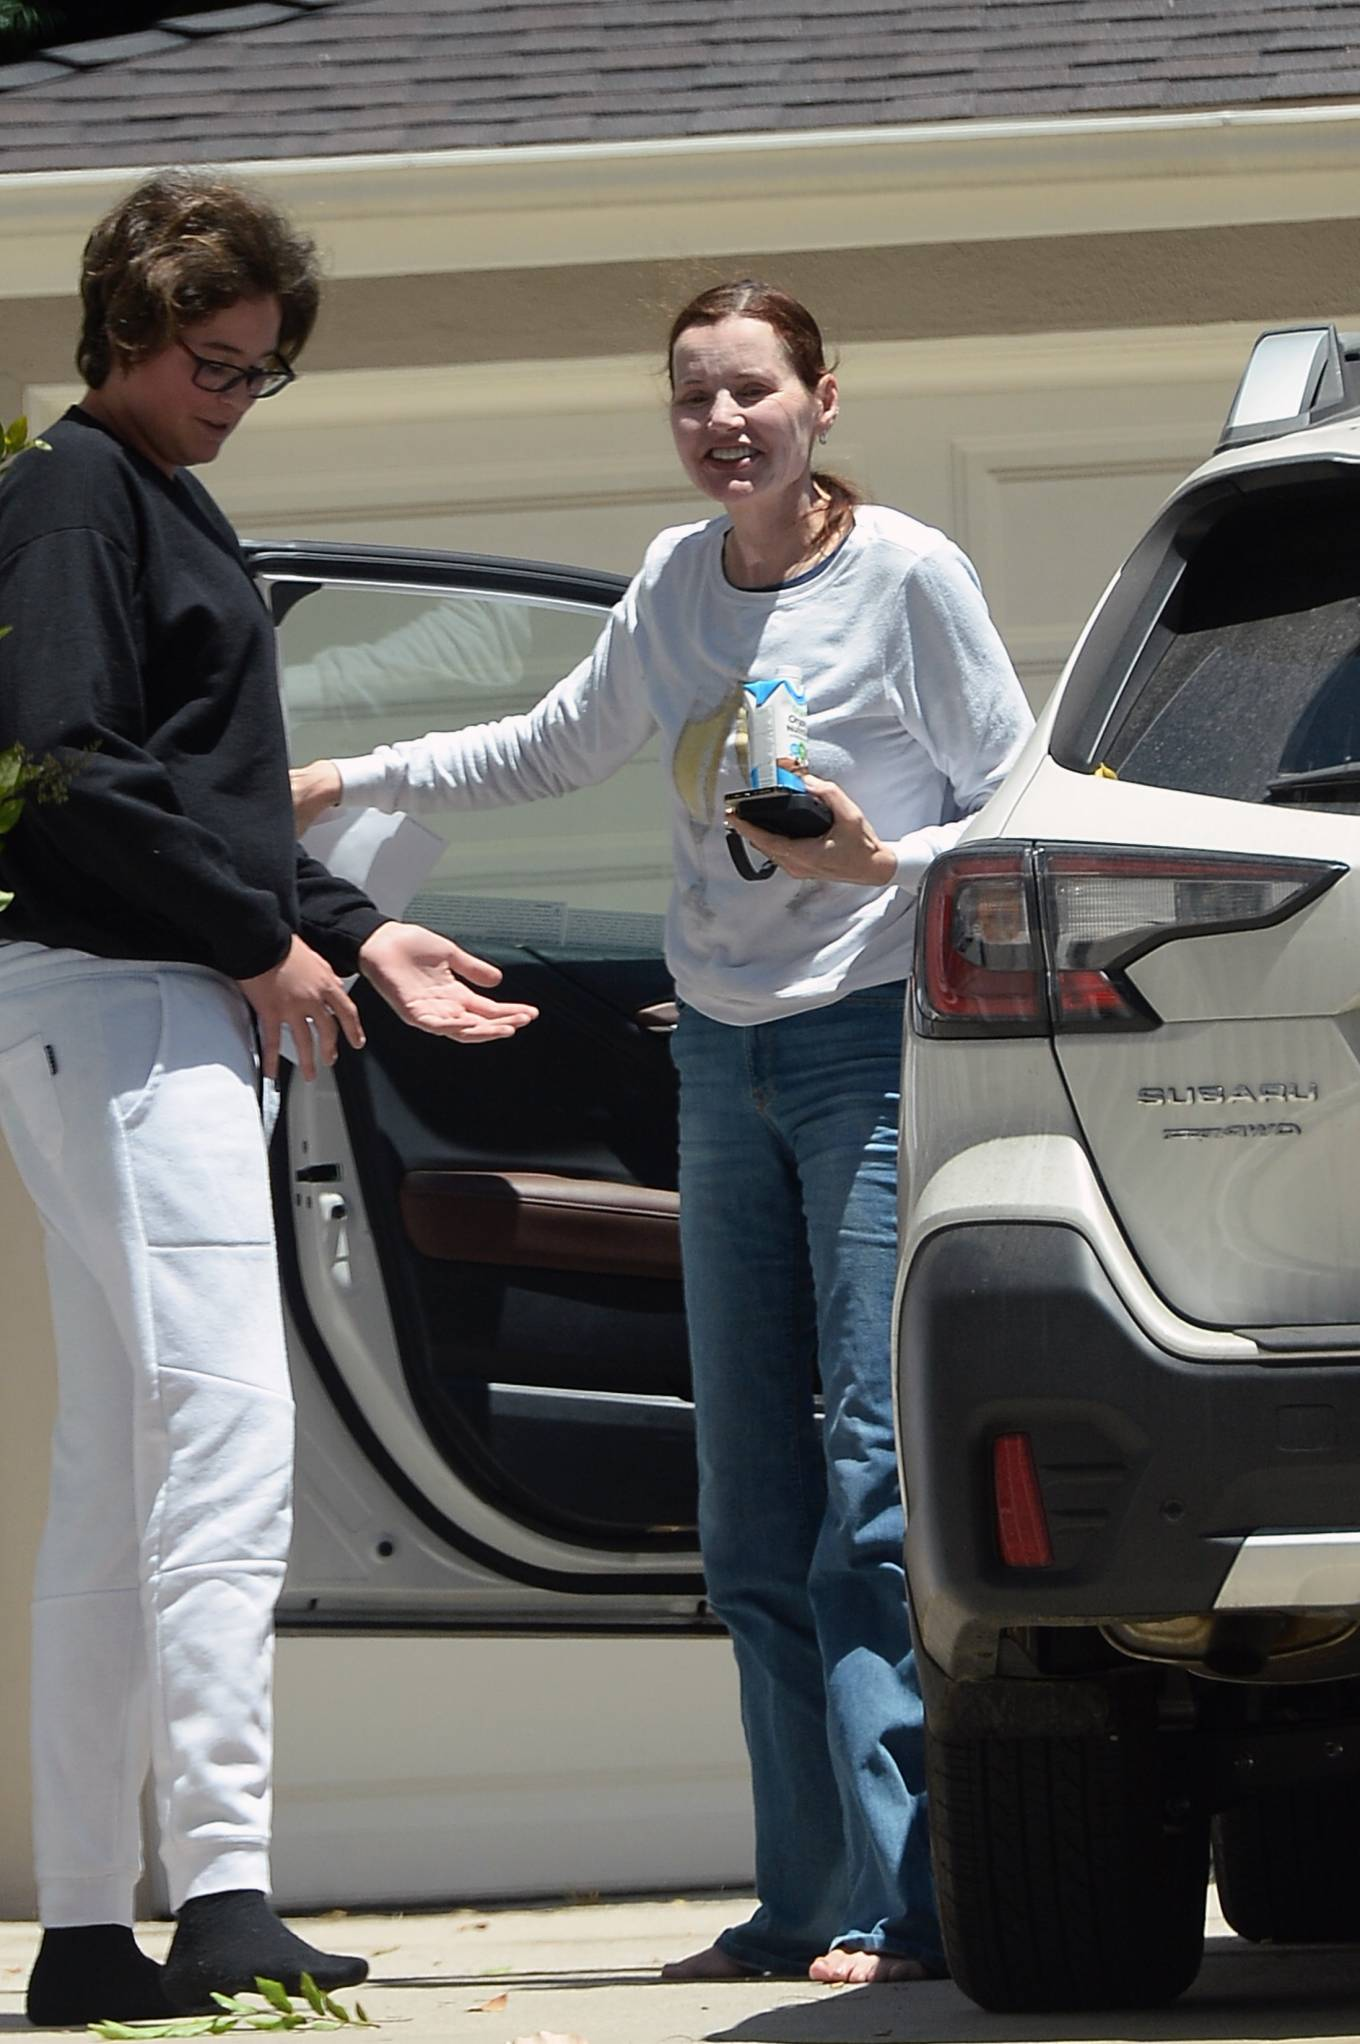 Geena Davis - Is spotted chatting with a friend in Los Angeles